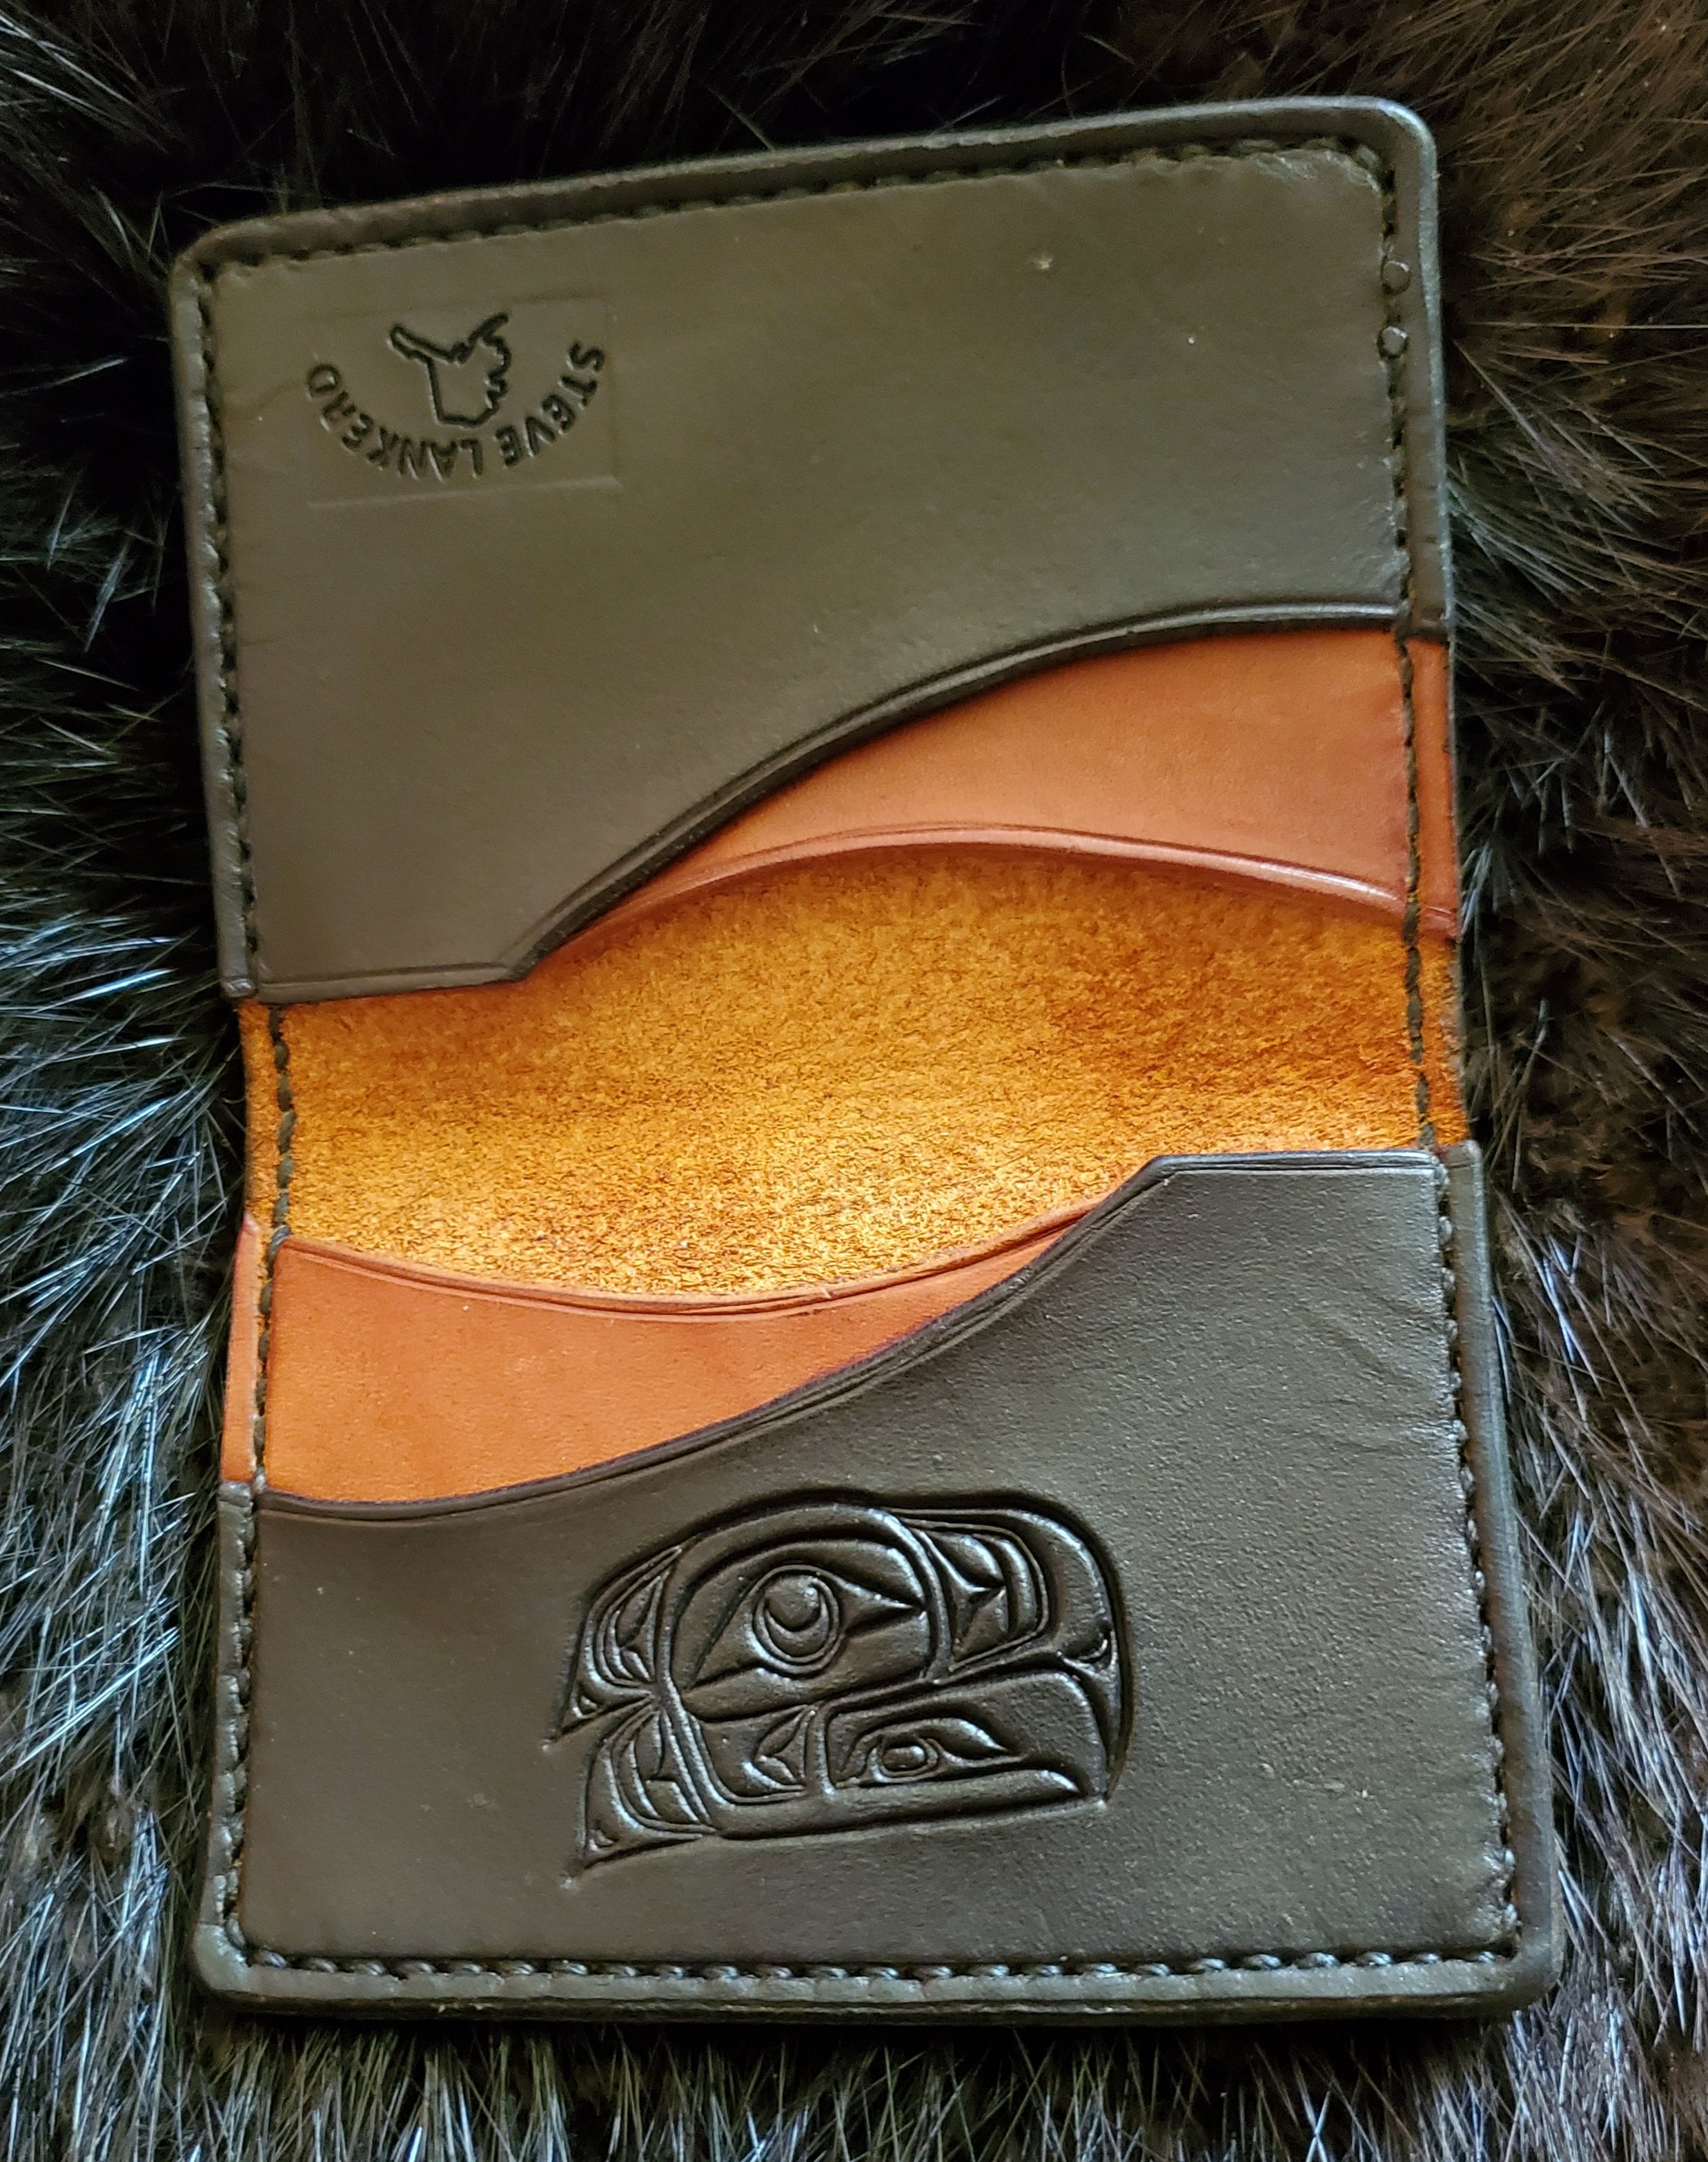 (Inside)  Minimalist 4 pocket Wallet hand tooled and stitched, $75.00